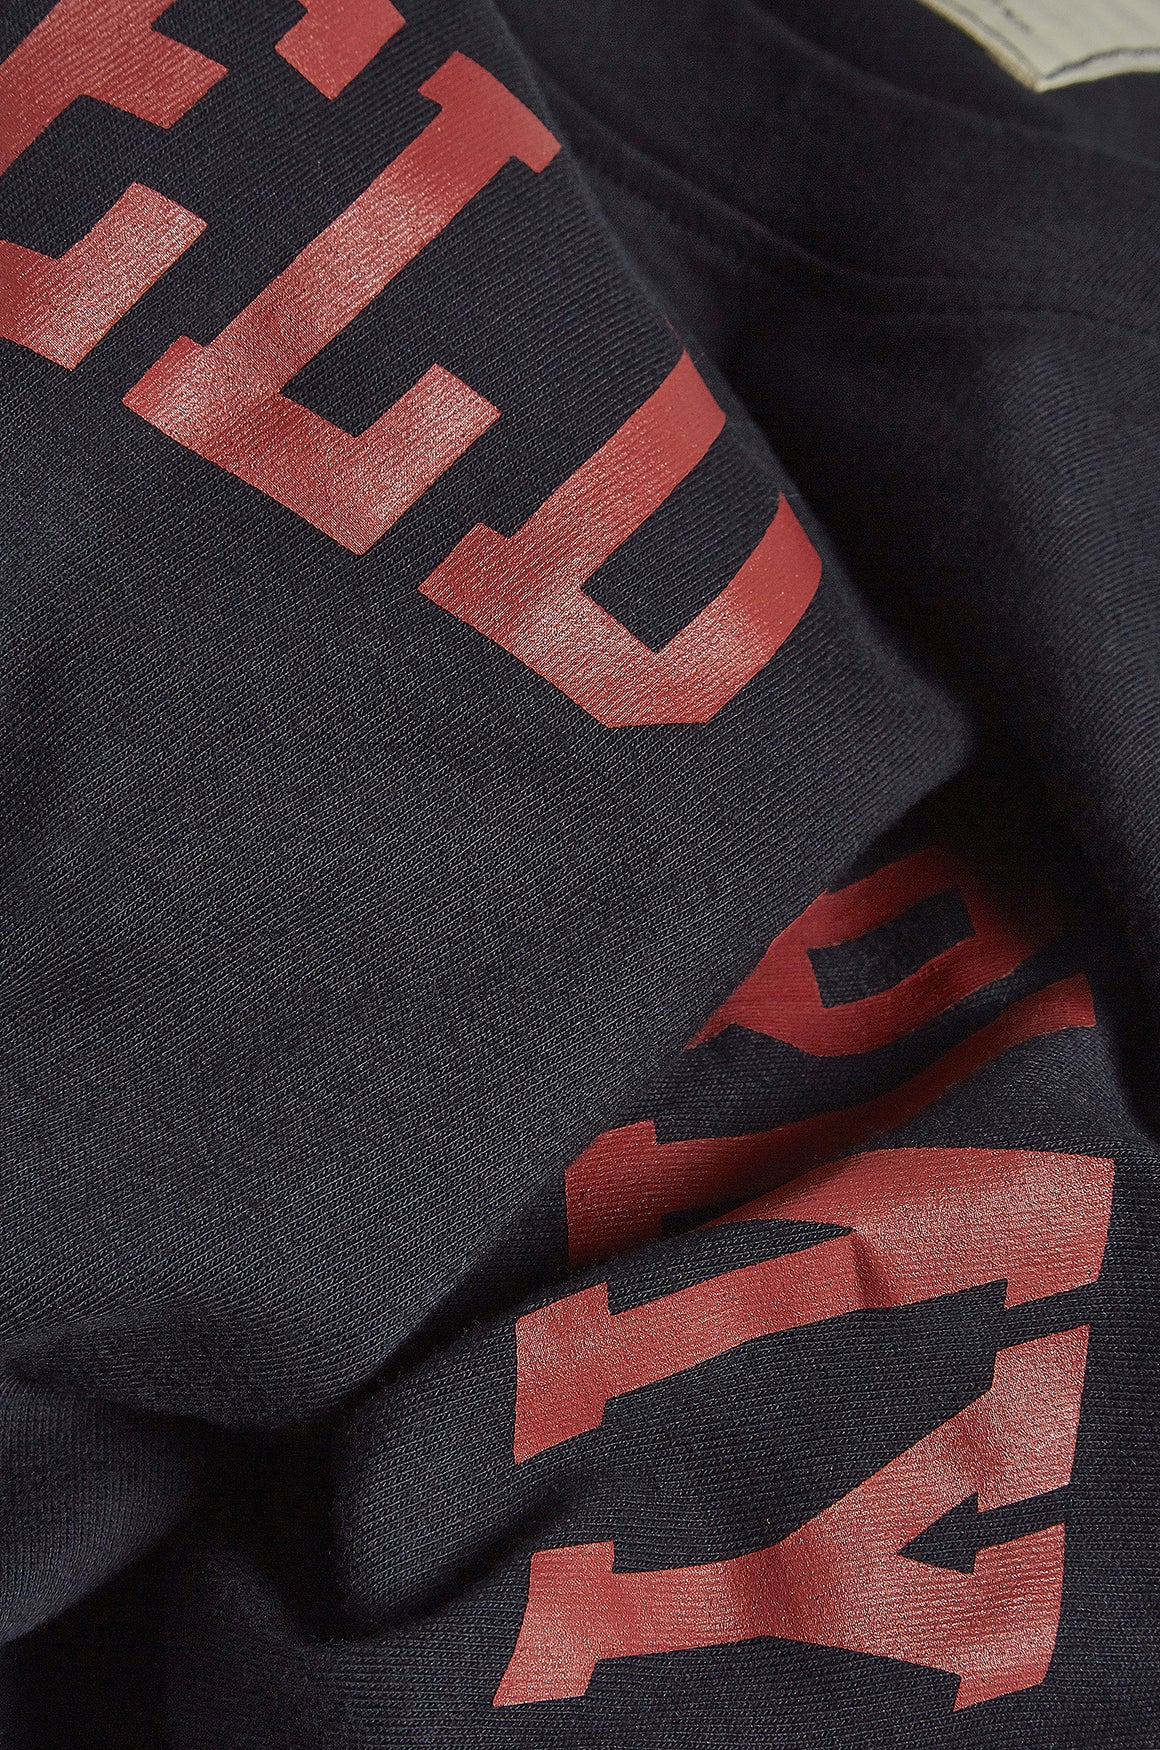 Regular fit field army design tee in navy red from realm empire